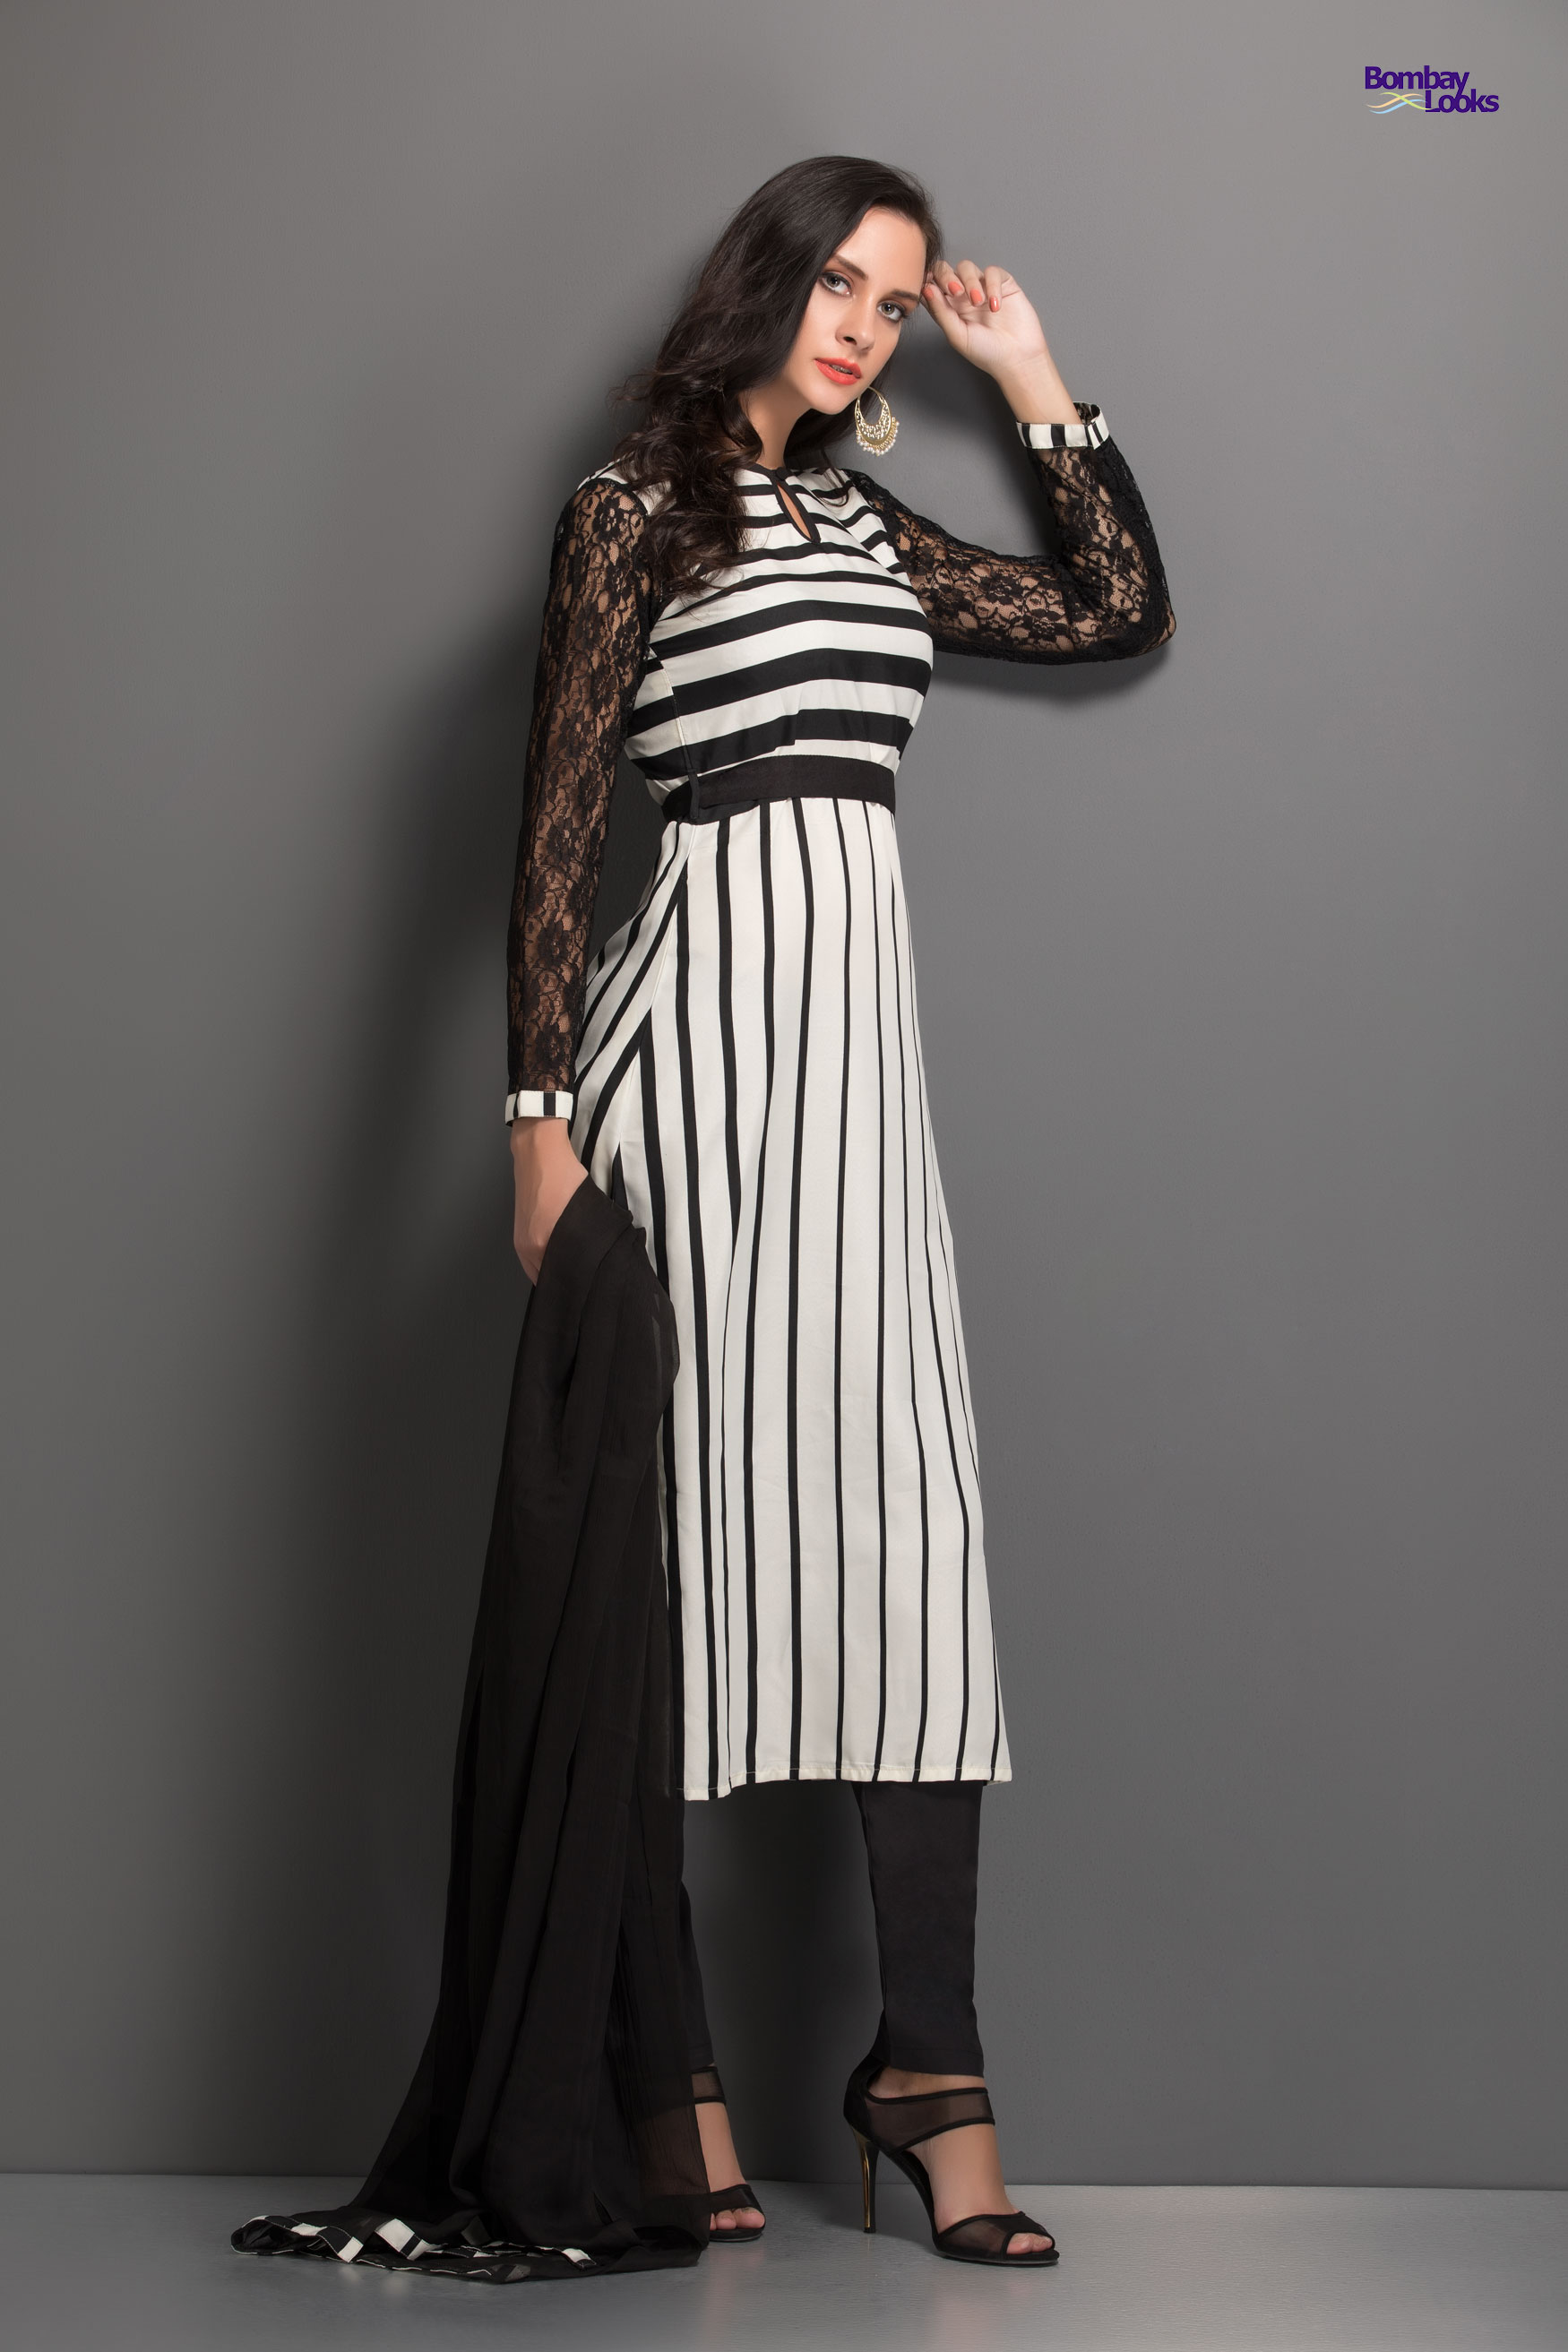 Elegant striped monochrome dress with lacey sleeves